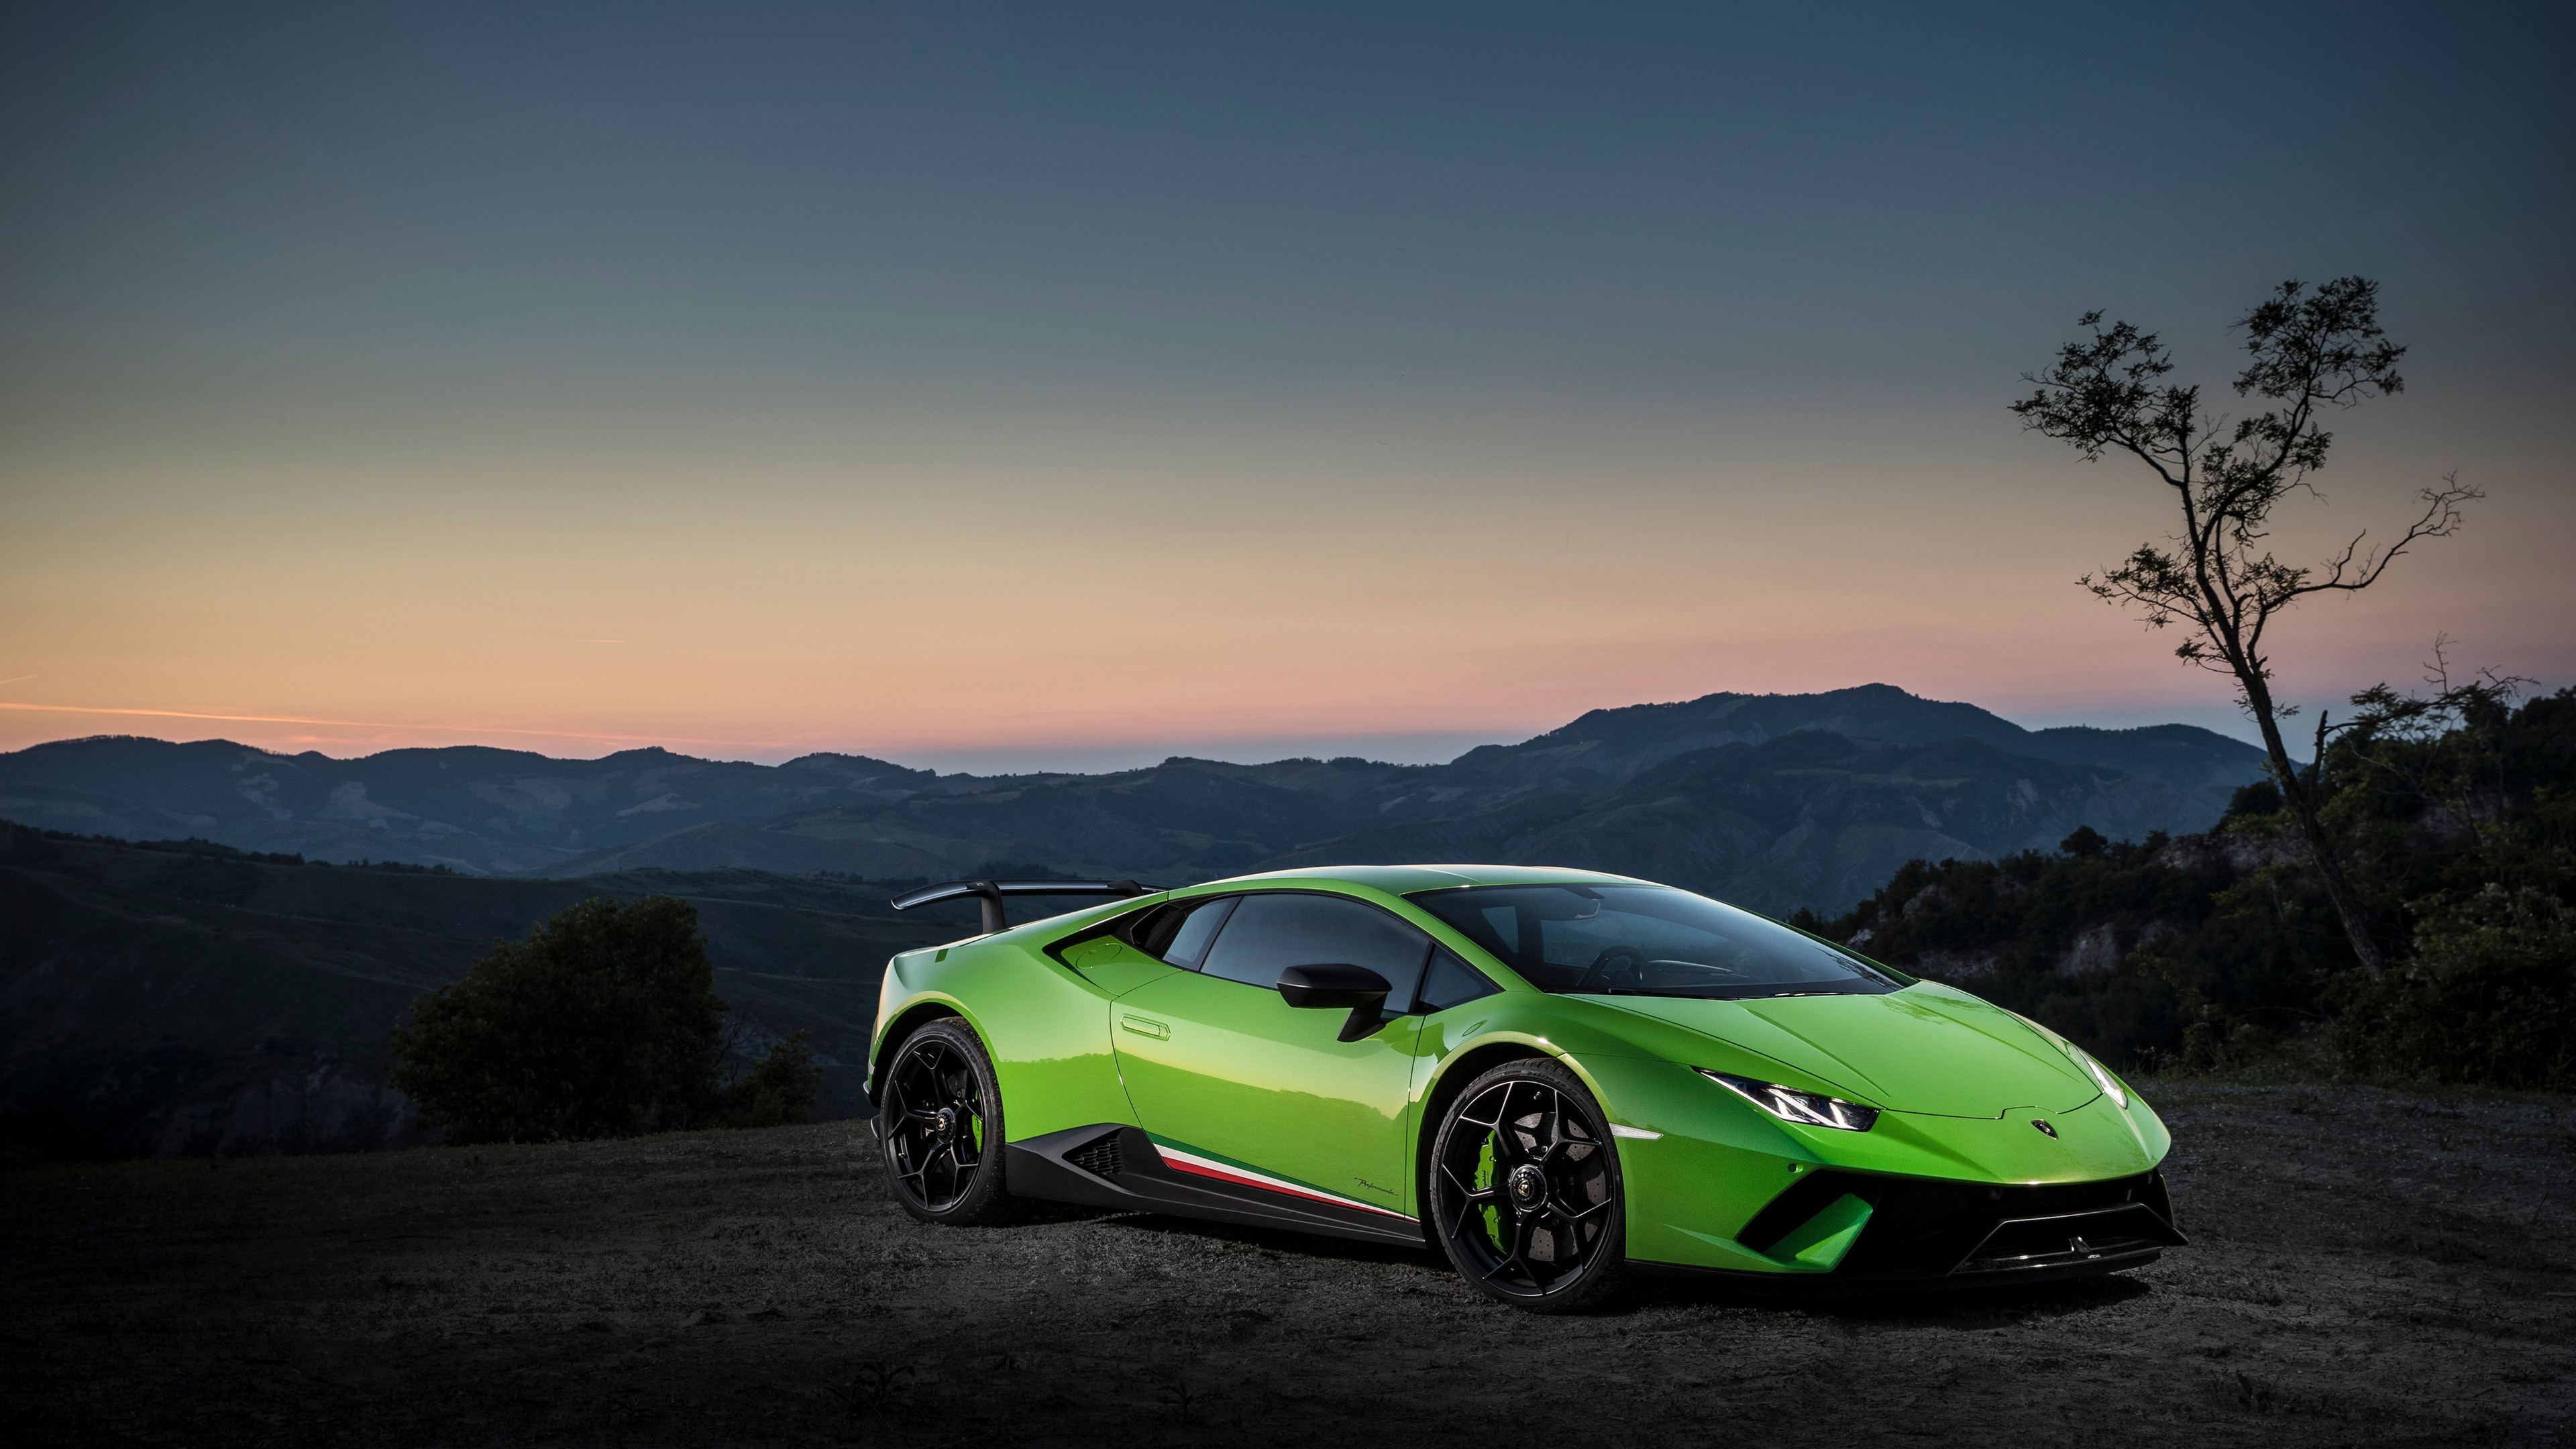 3840x2160 4k lamborghini huracan performante 4k hd 4k wallpapers images backgrounds photos. Black Bedroom Furniture Sets. Home Design Ideas